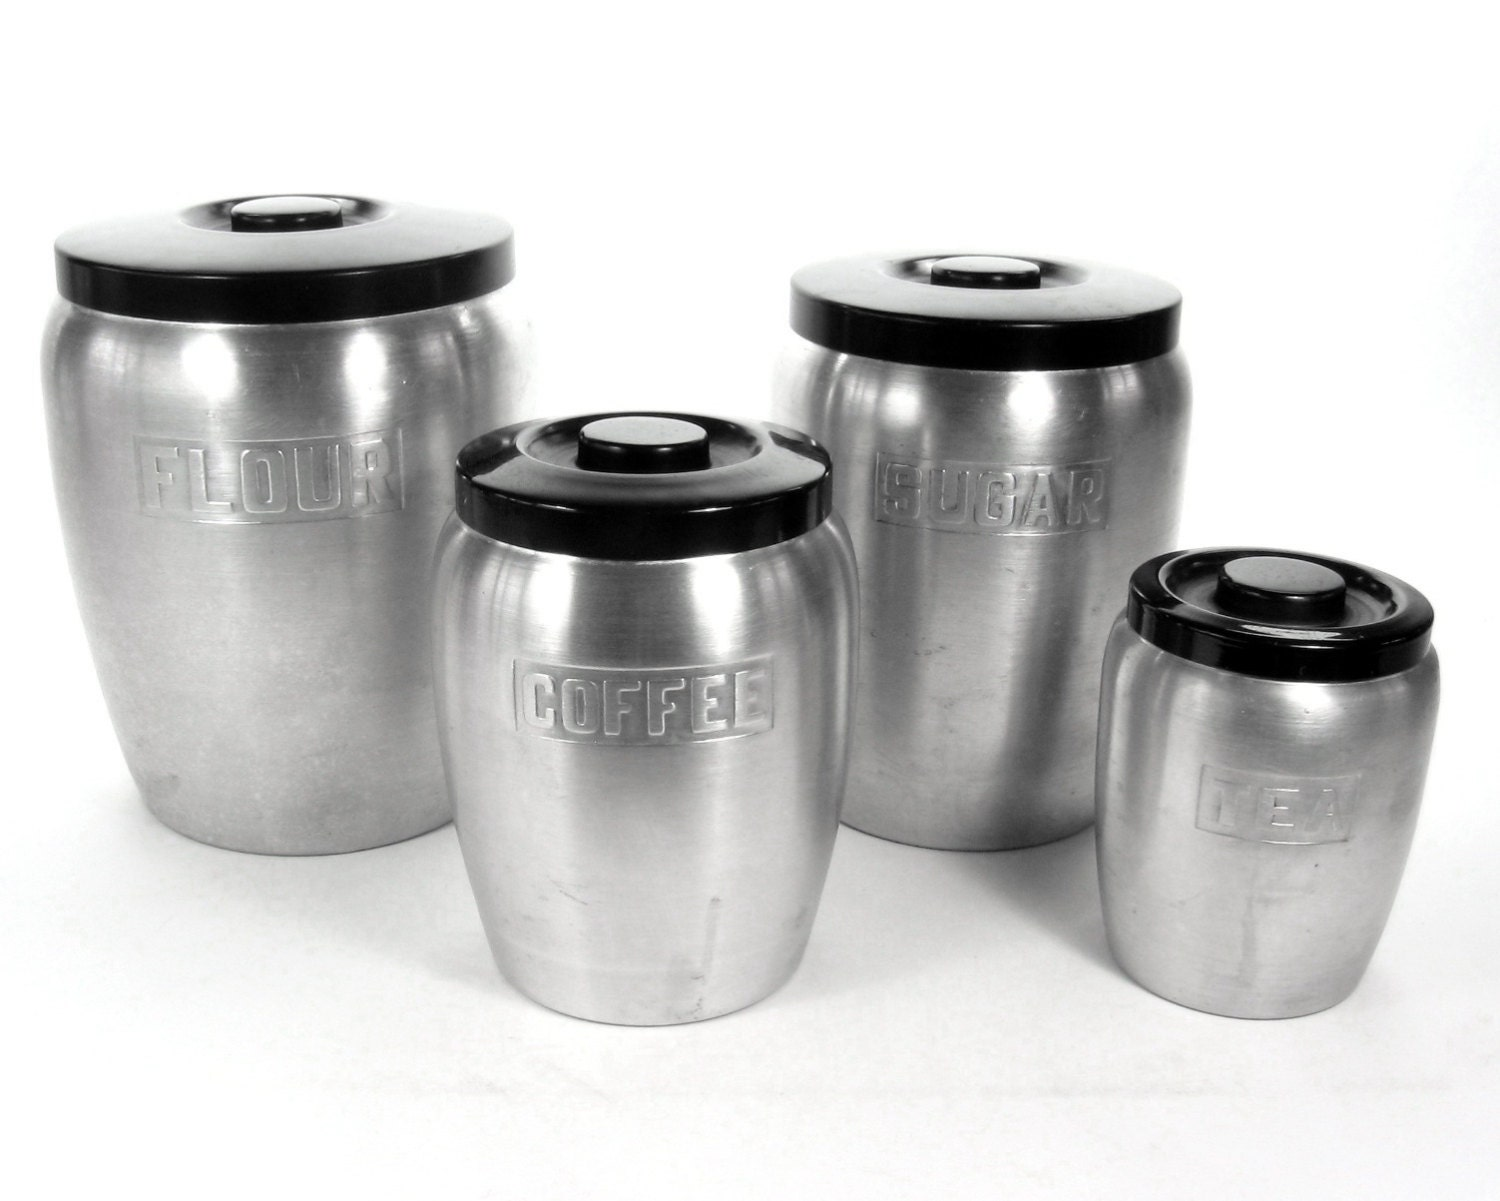 vintage kitchen canister set aluminum 1940s kitchen decor